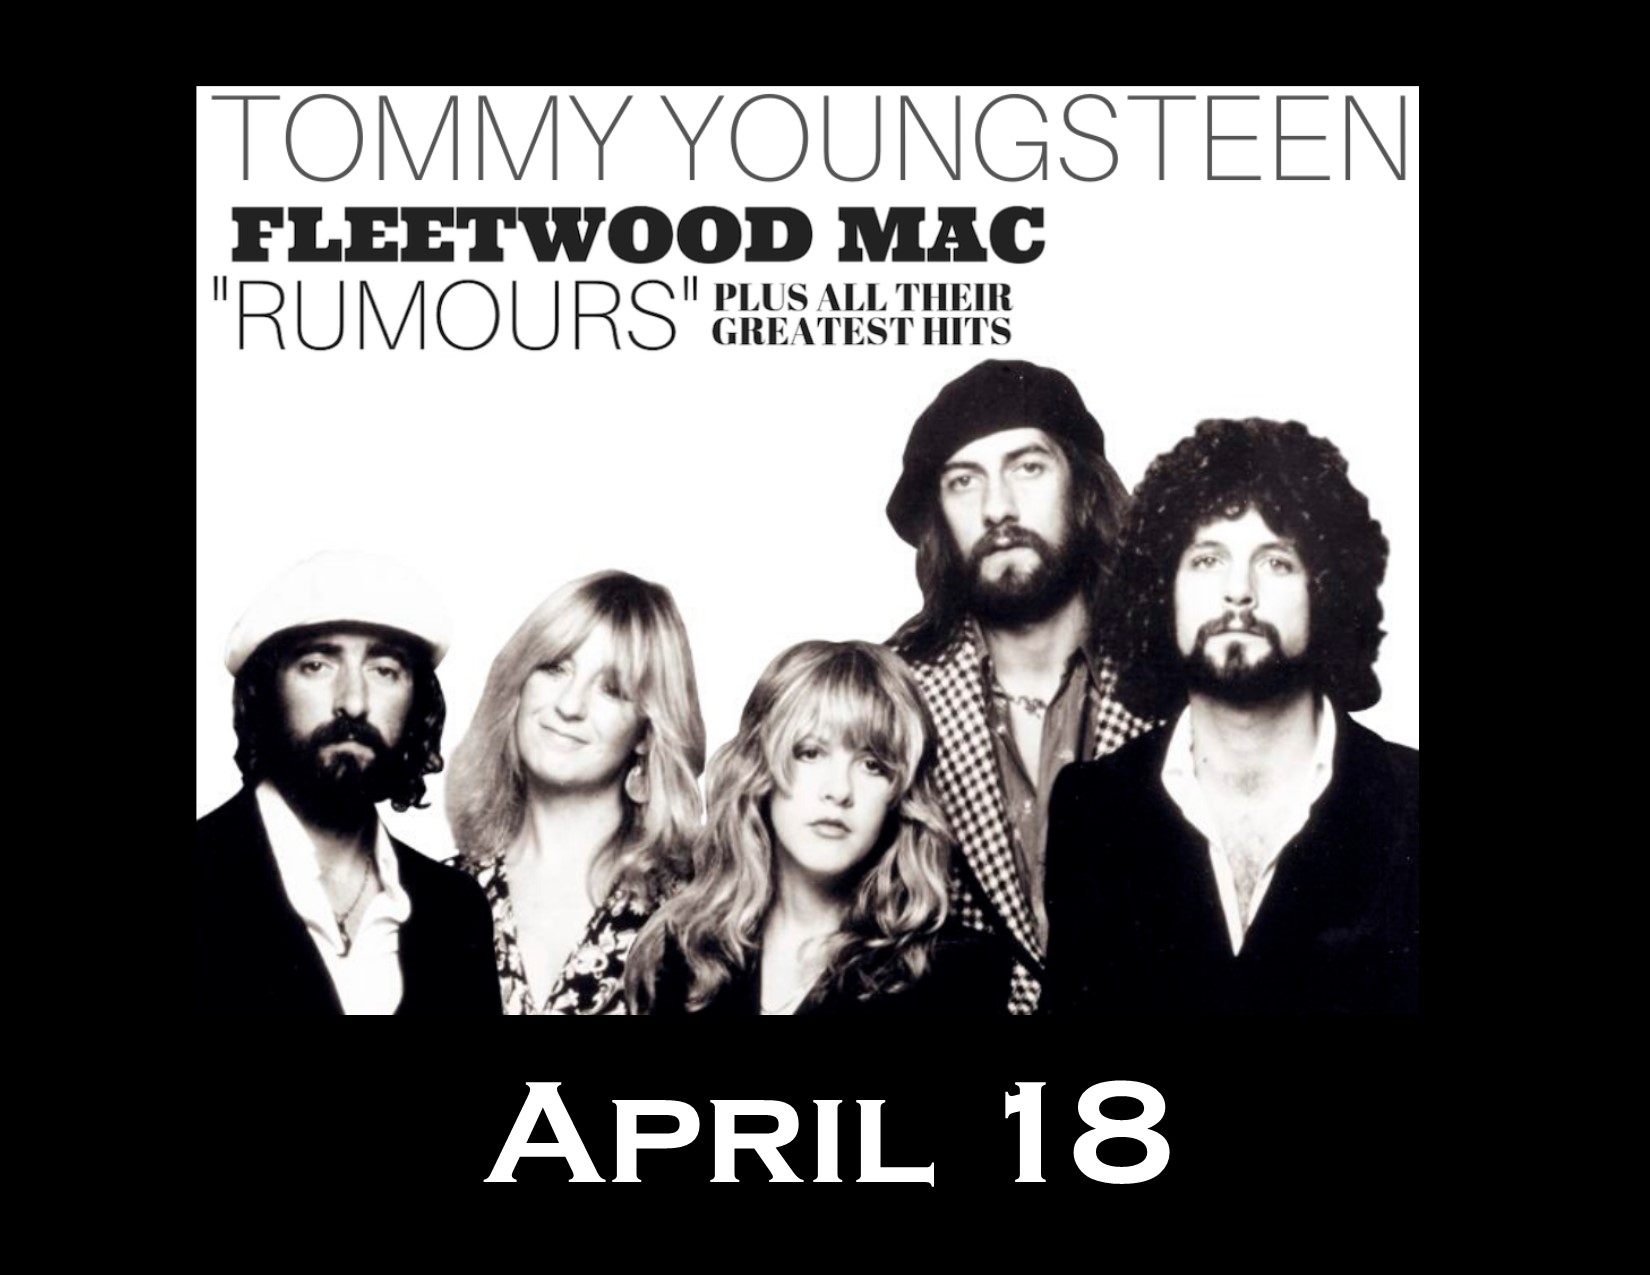 Tommy Youngsteen - Fleetwood Mac Rumours